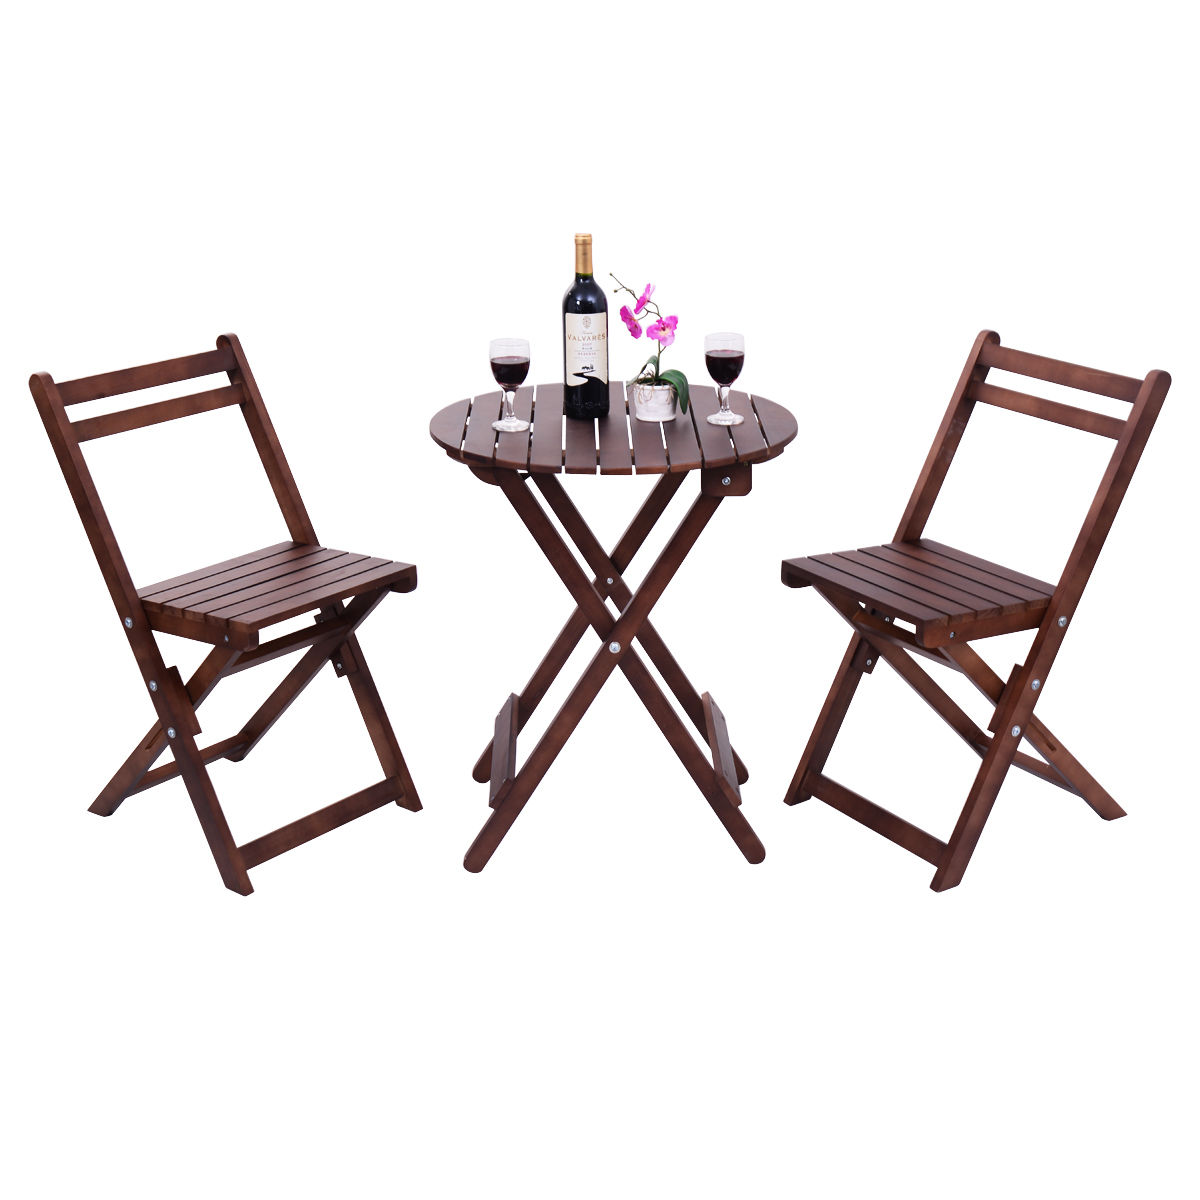 Giantex 3 Piece Garden Table Chair Set Wood Folding Outdoor Pool Patio Furniture Set Portable Modern Table Chairs Set OP3081 abba patio outdoor porch rectangular table and chair set cover water proof all weather protection tan 108 l x 82 w x 36 h